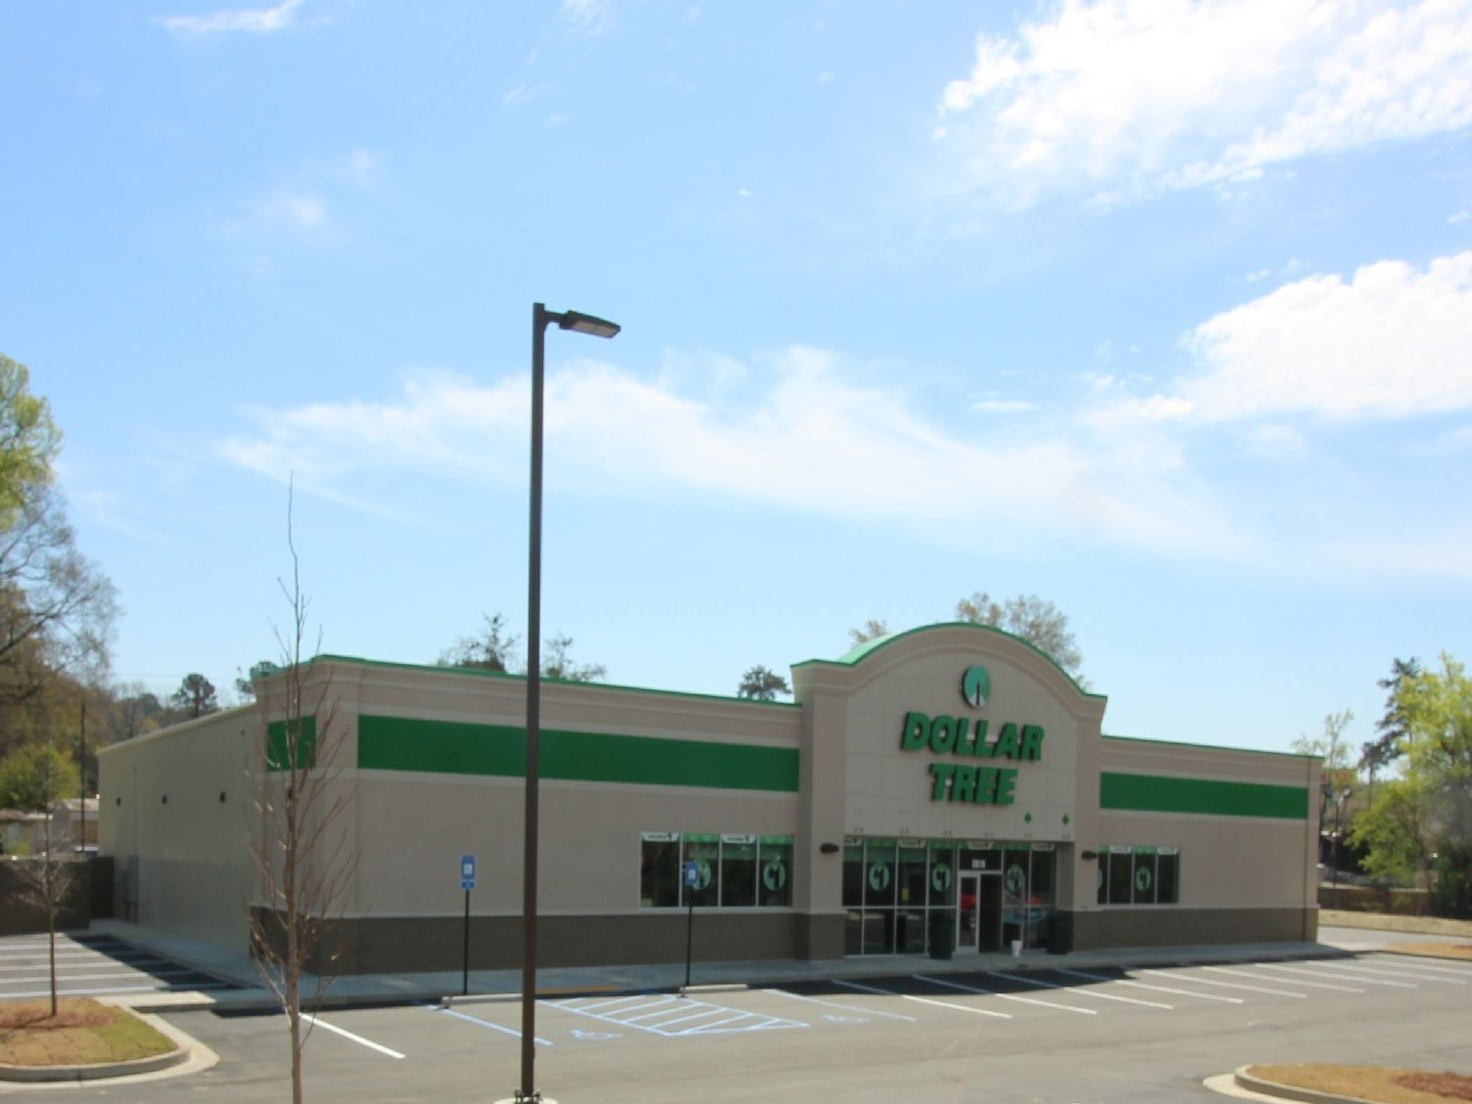 Dollar_Tree_-_Columbus,_GA-20180316-125323.jpg